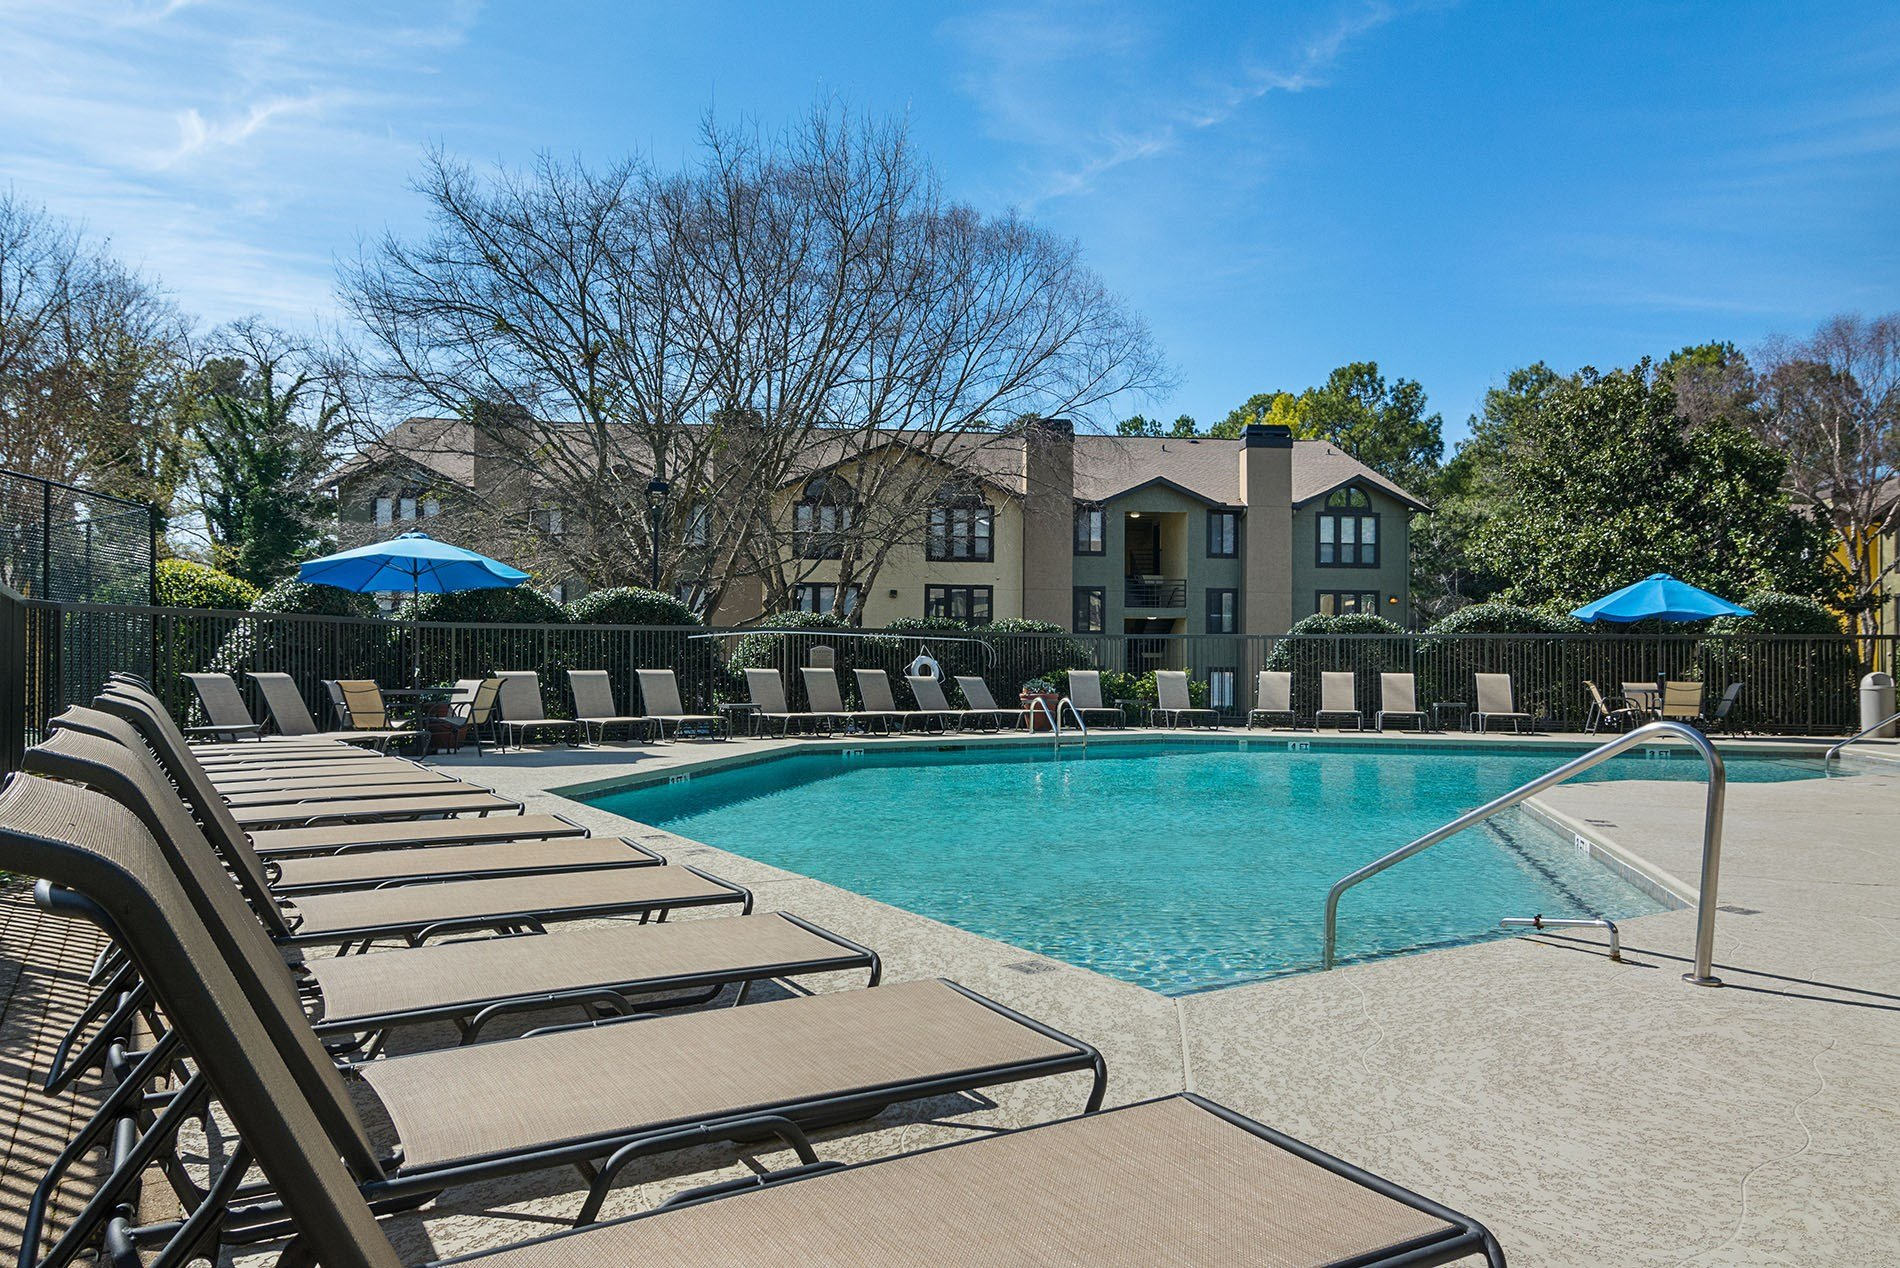 waterford place apartments  295 east belle isle rd ne 3 bedroom houses for rent in atlanta ga section 8